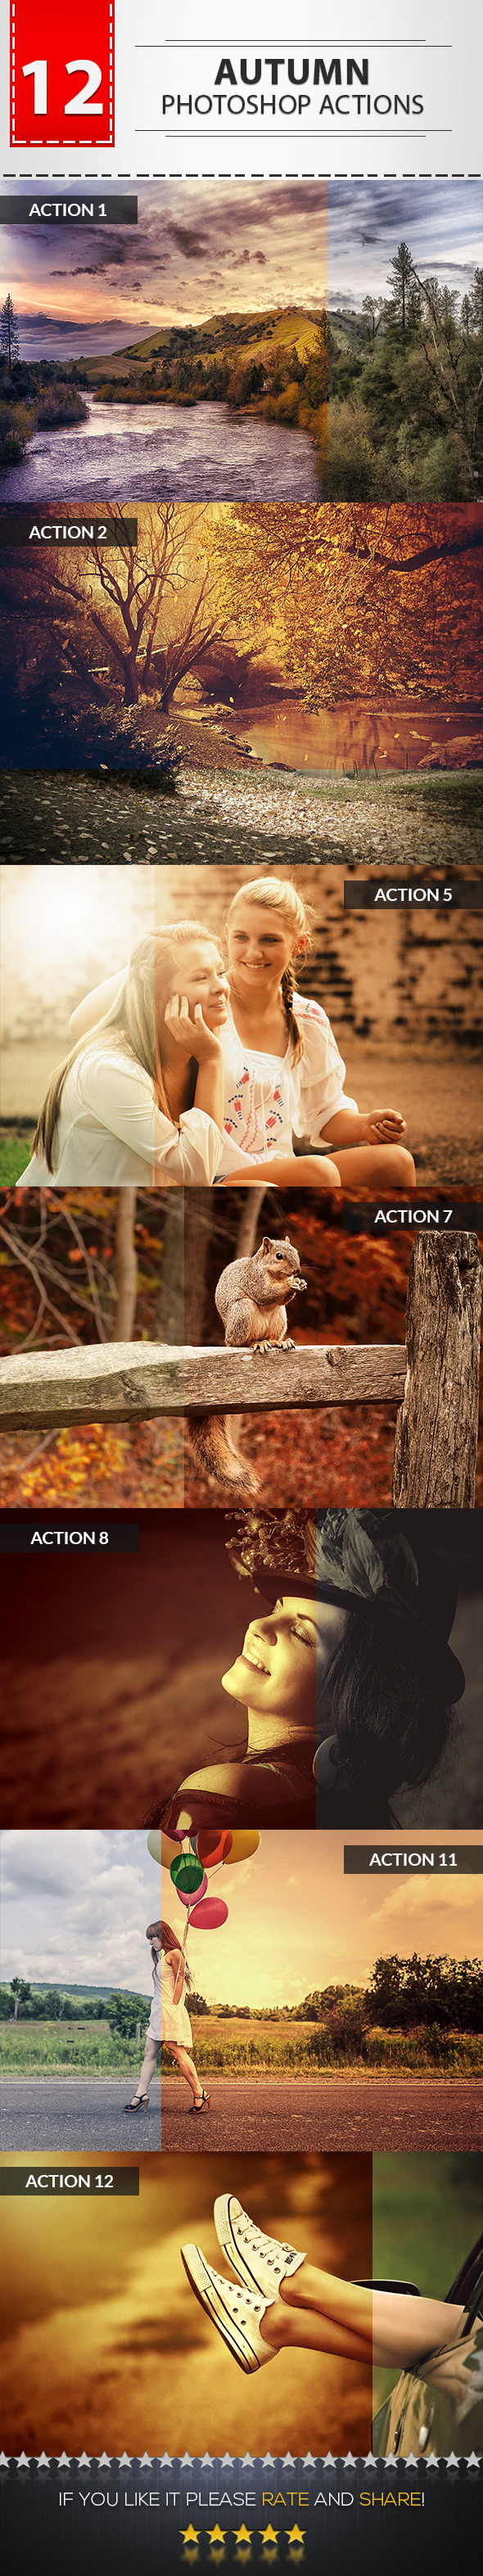 12 Autumn Photoshop Actions - Photo Effects Actions